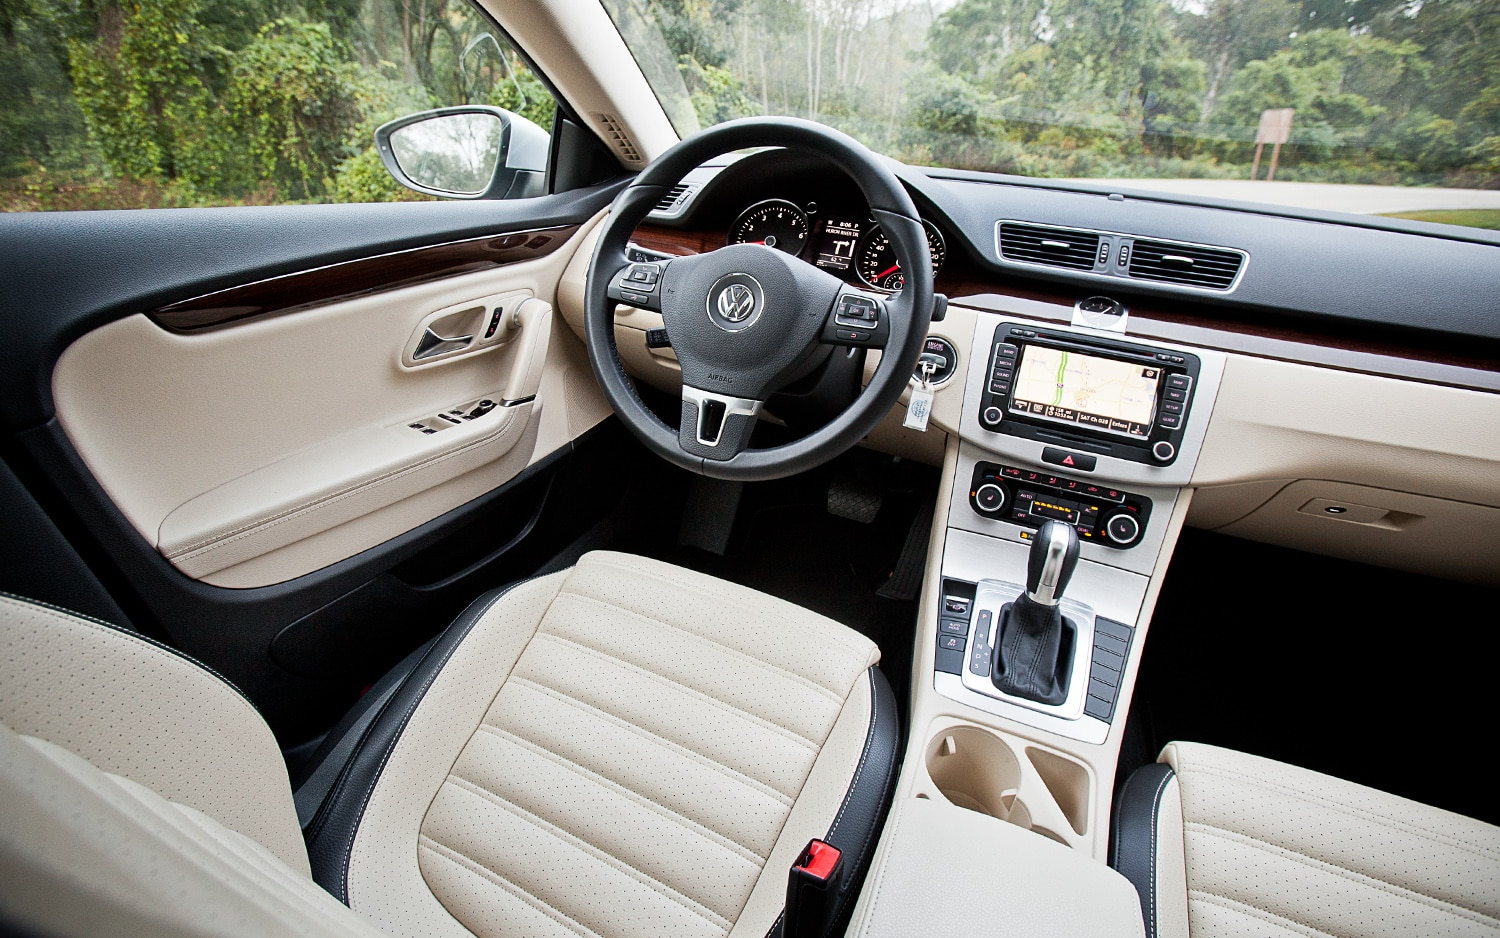 2012 Volkswagen CC LUX Limited - Editors' Notebook - Automobile Magazine